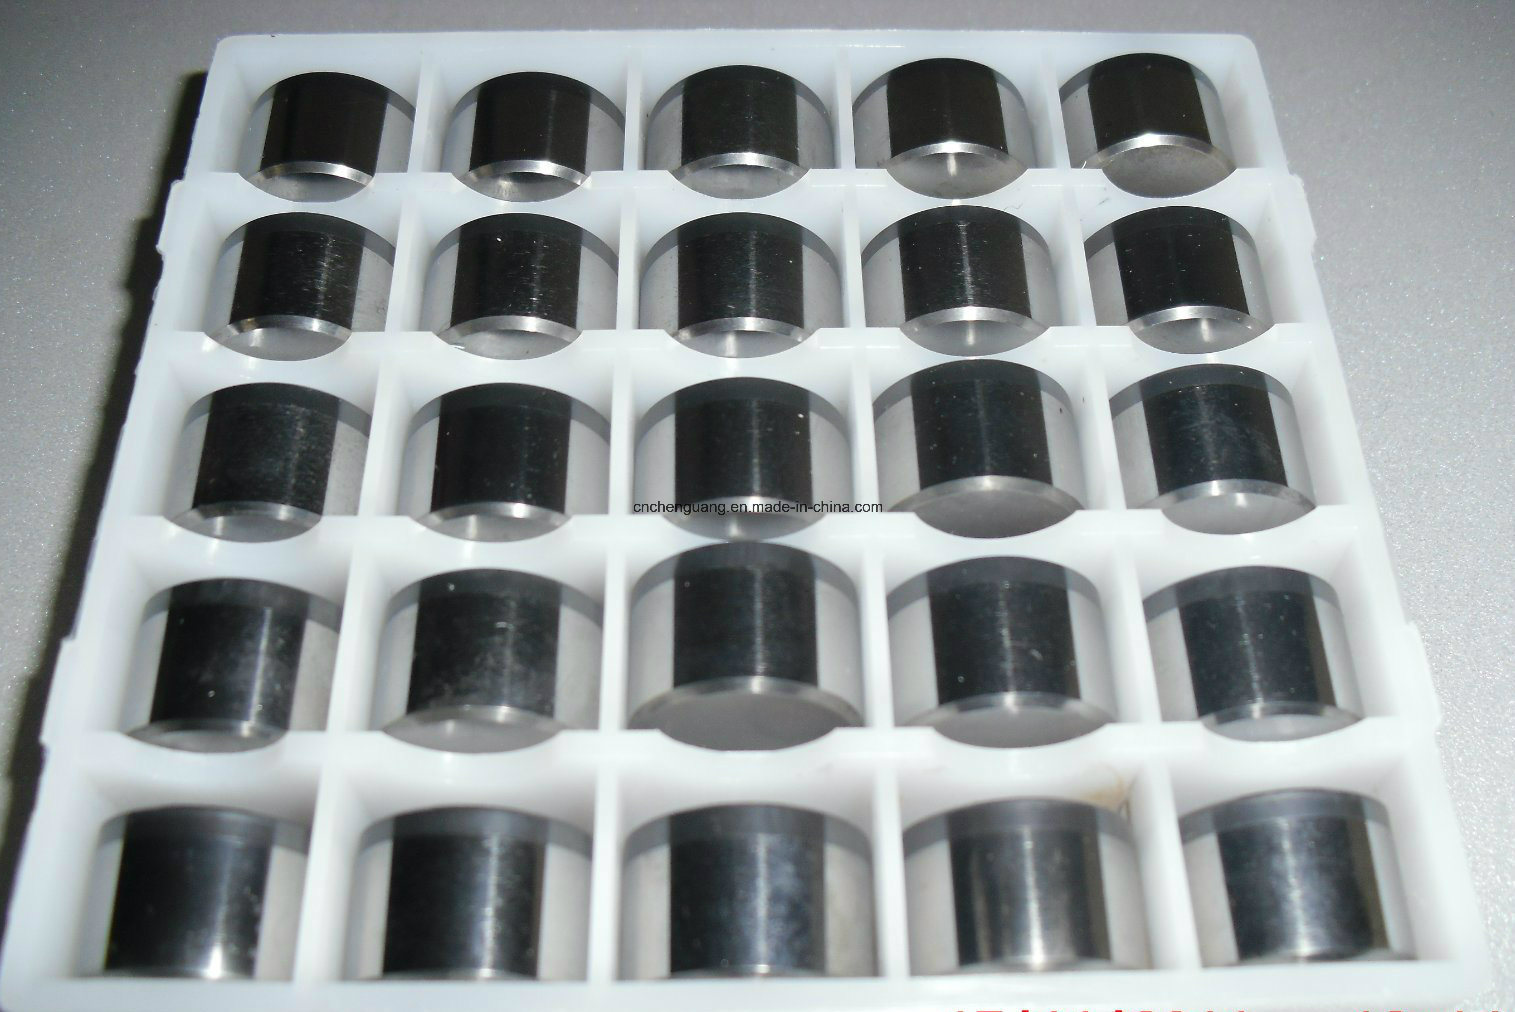 1908, 1913, 1916, 1919 and 1925 PDC Insert PCD Blank Cutter, PCD/PDC Insert Base, Tungsten Carbide CNC Insert